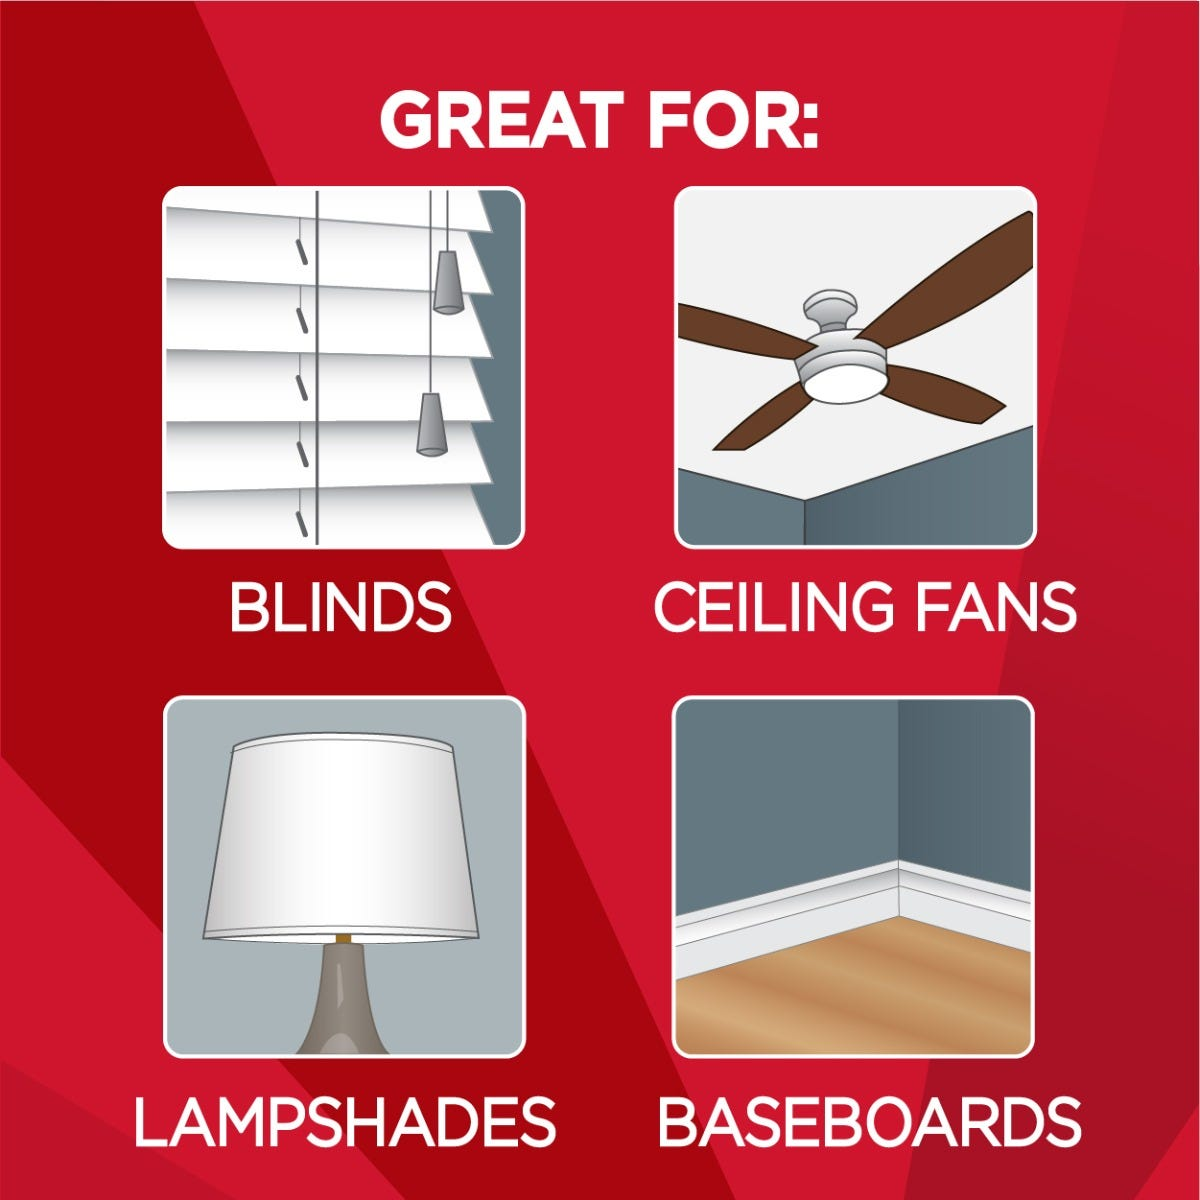 Use on blinds, fans and lamp shades